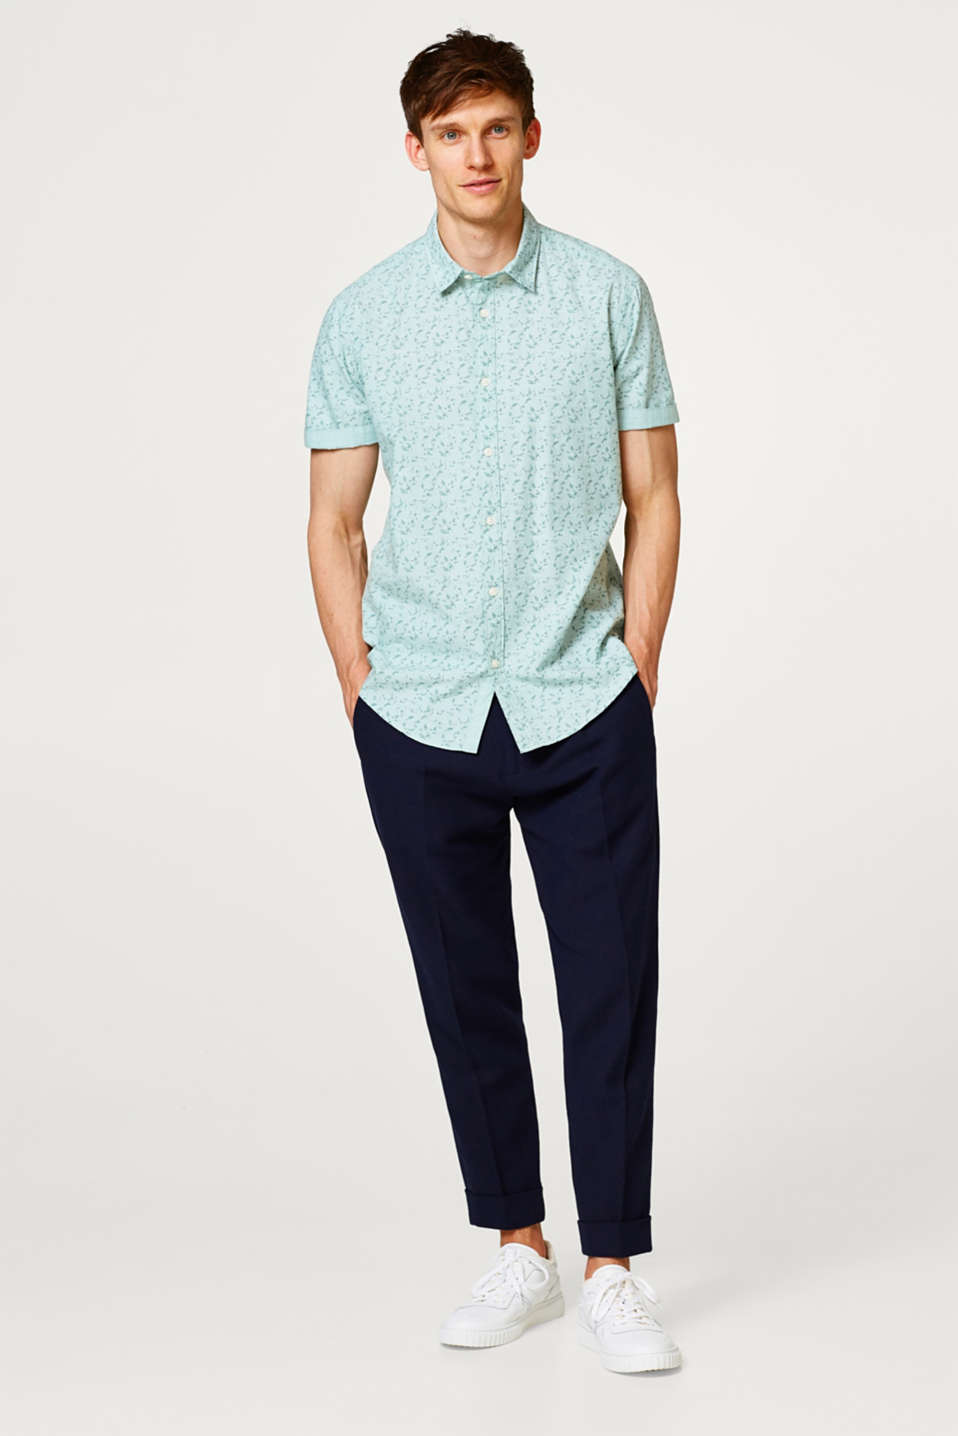 Cotton short sleeve shirt with a floral print